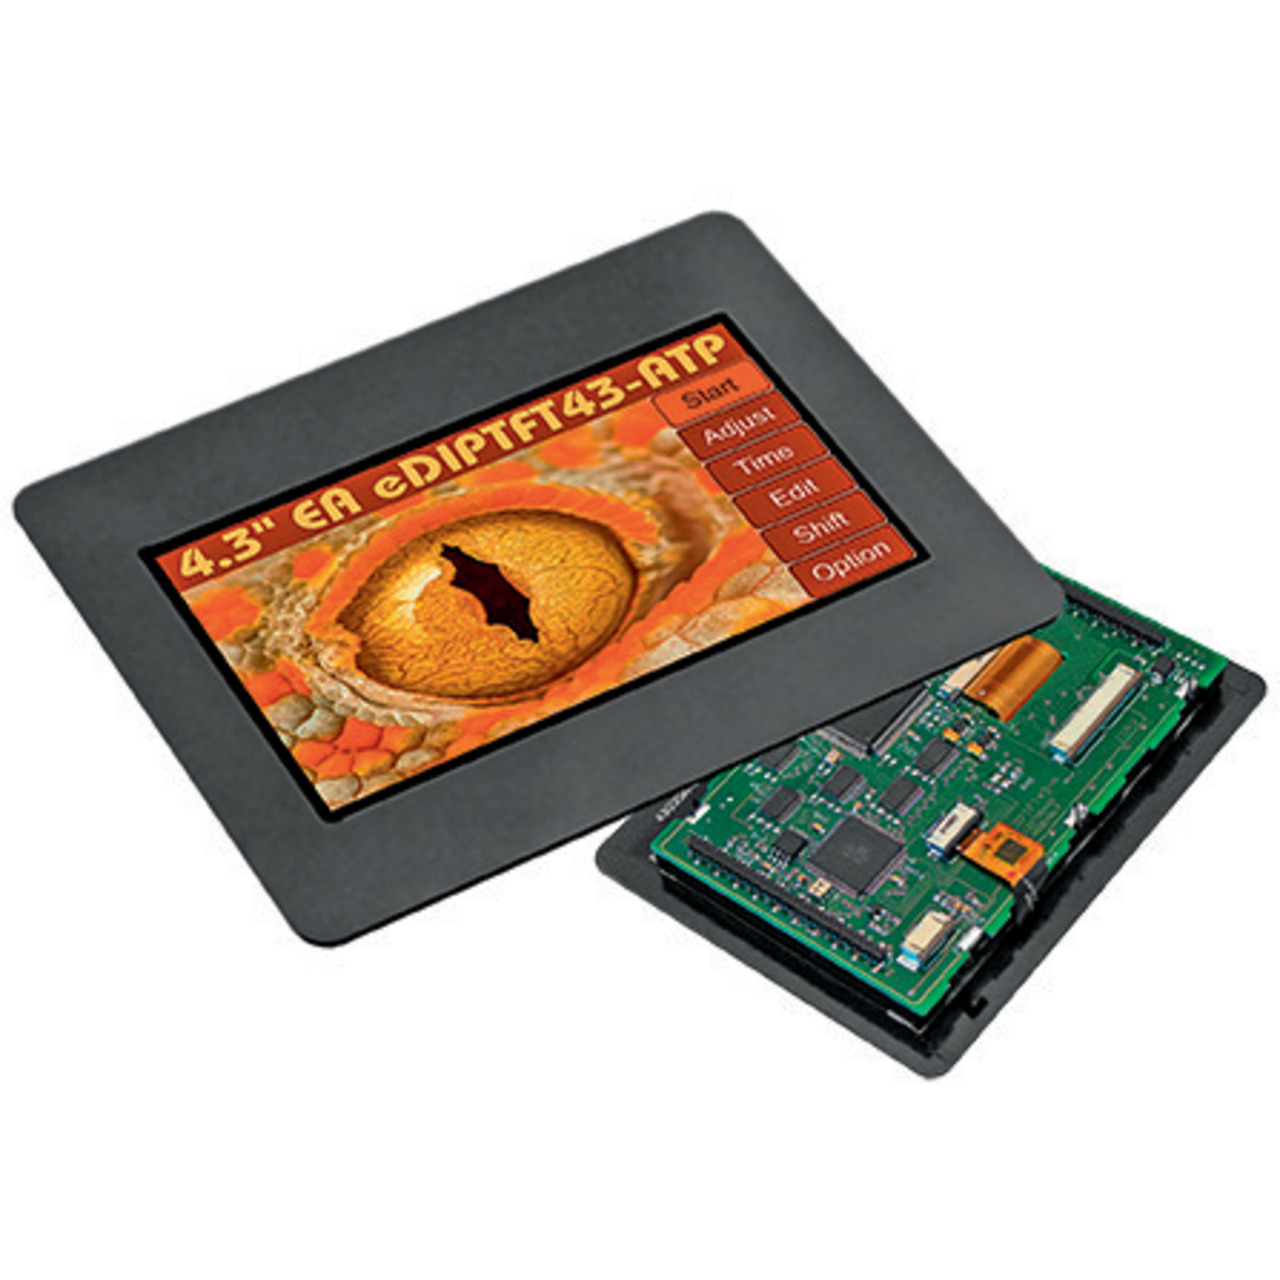 Electronic Assembly LCD-Bedieneinheit mit Touch EA eDIPTFT43-ATC- 480 x 272 Pixel mit Glasrahmen